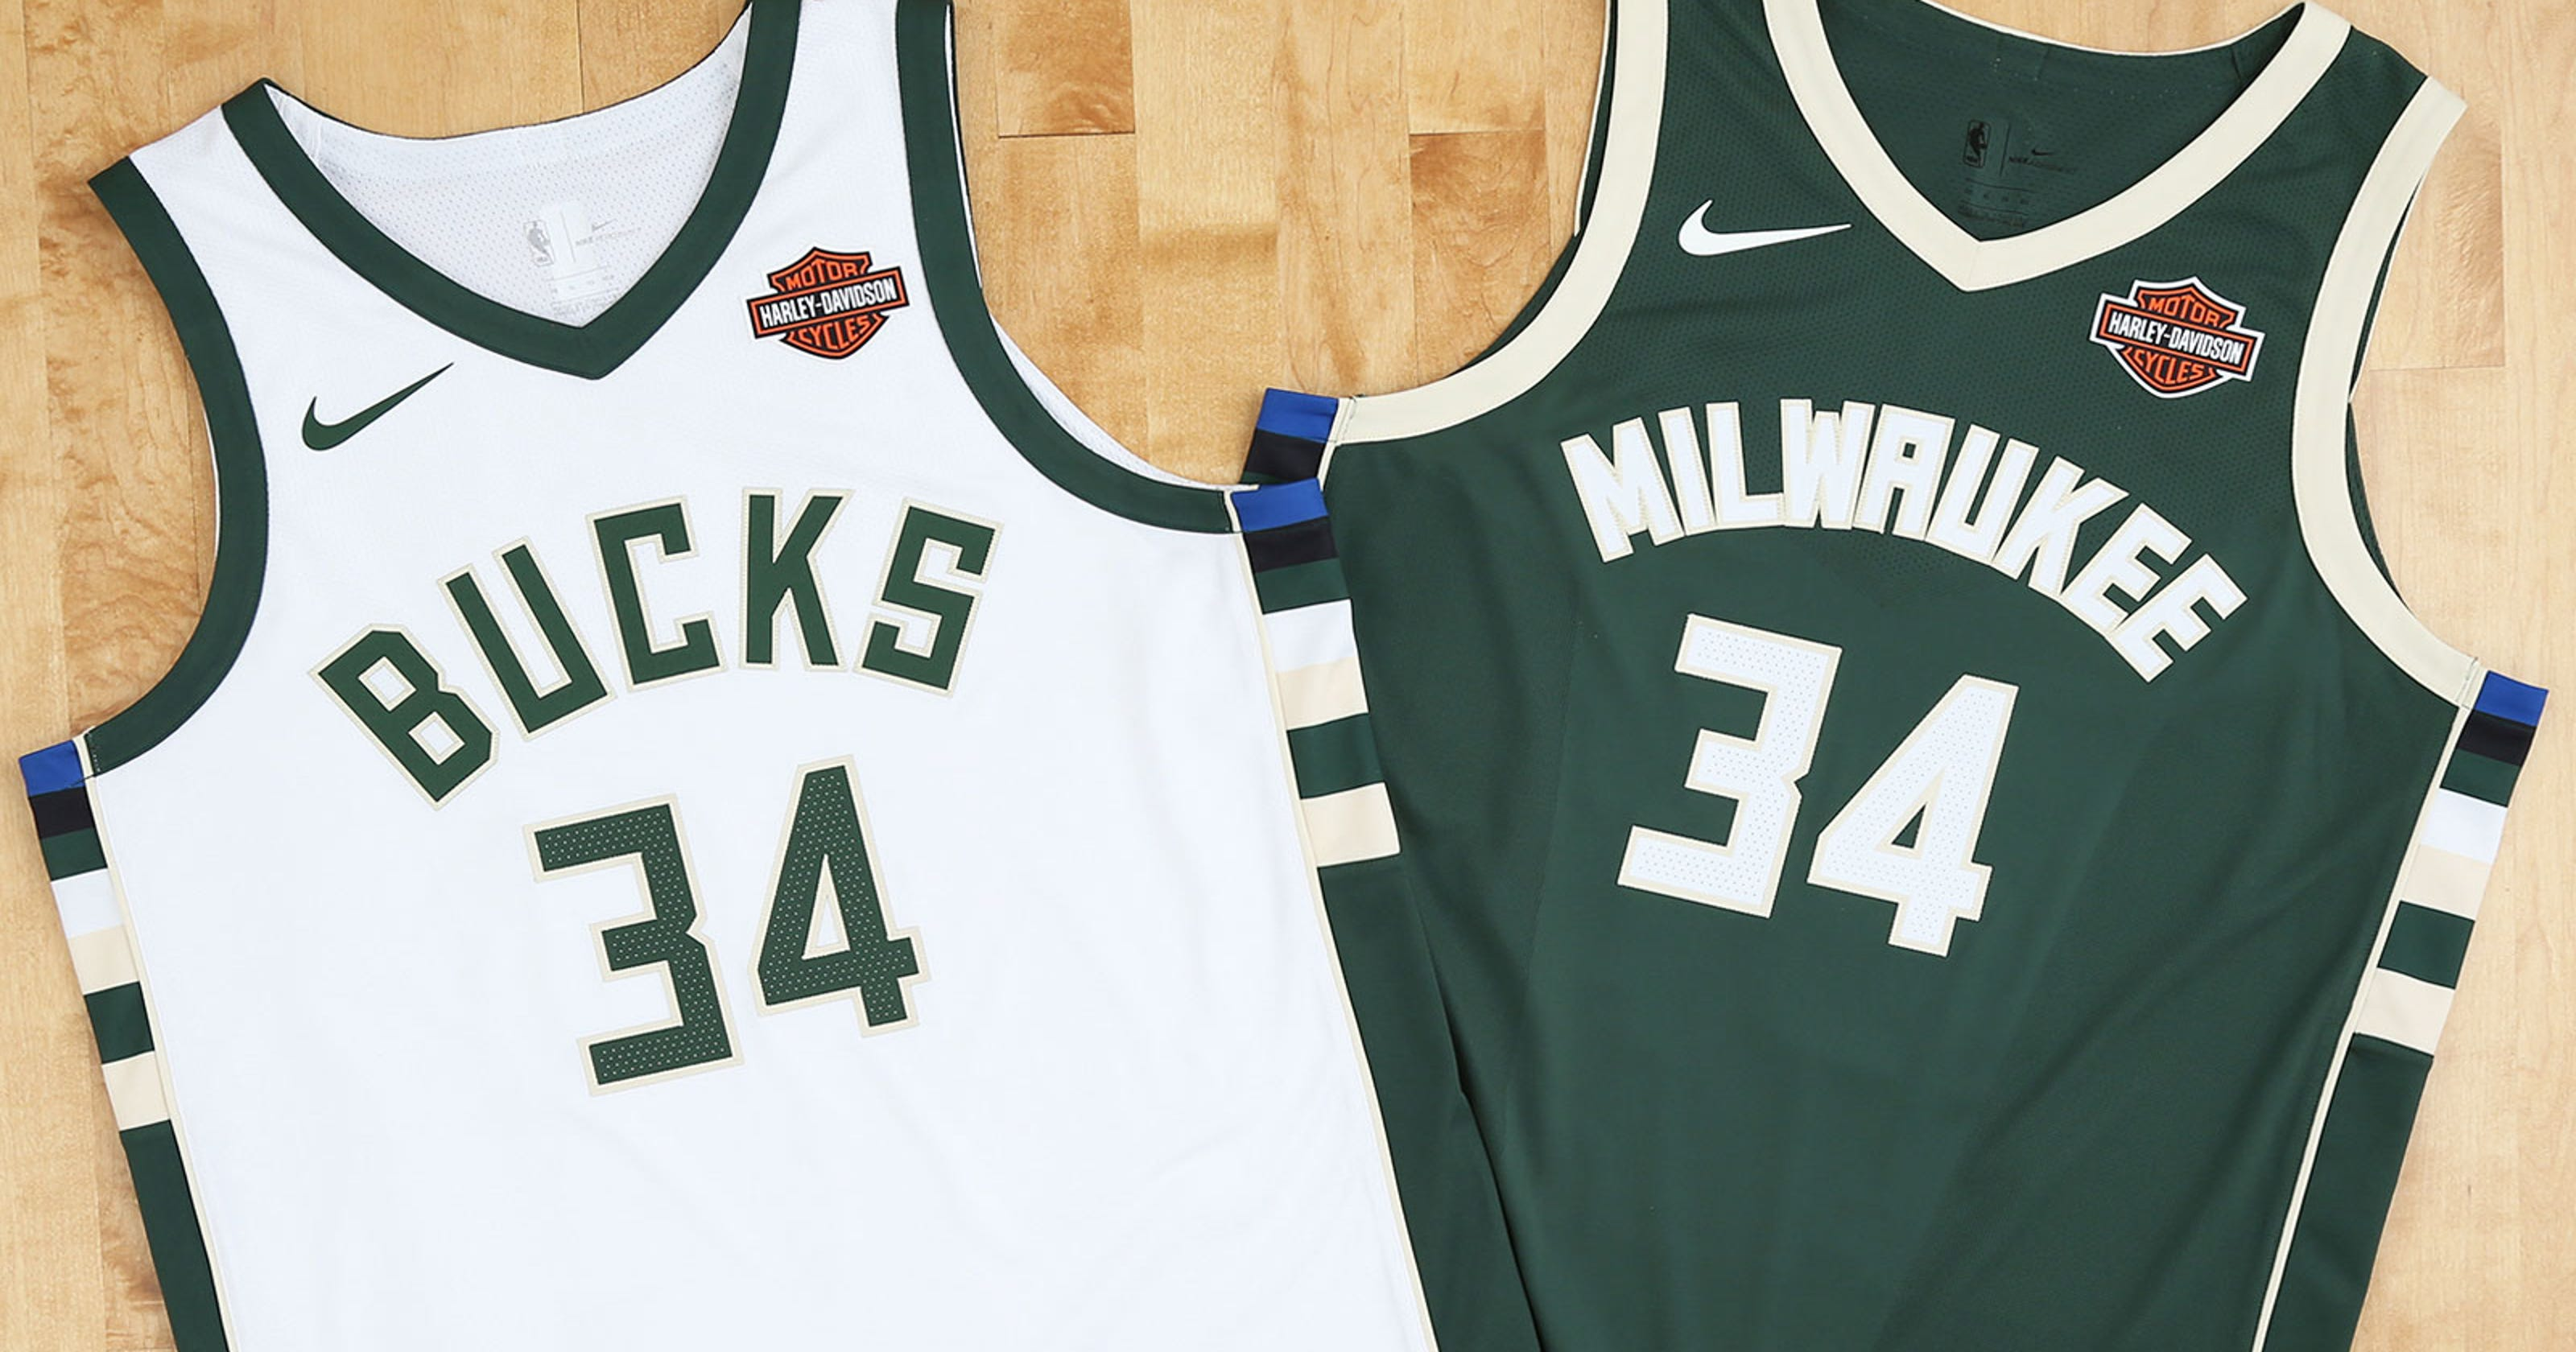 c69c495fa Milwaukee Bucks game jerseys to feature Harley-Davidson advertising patch  starting in 2017- 18